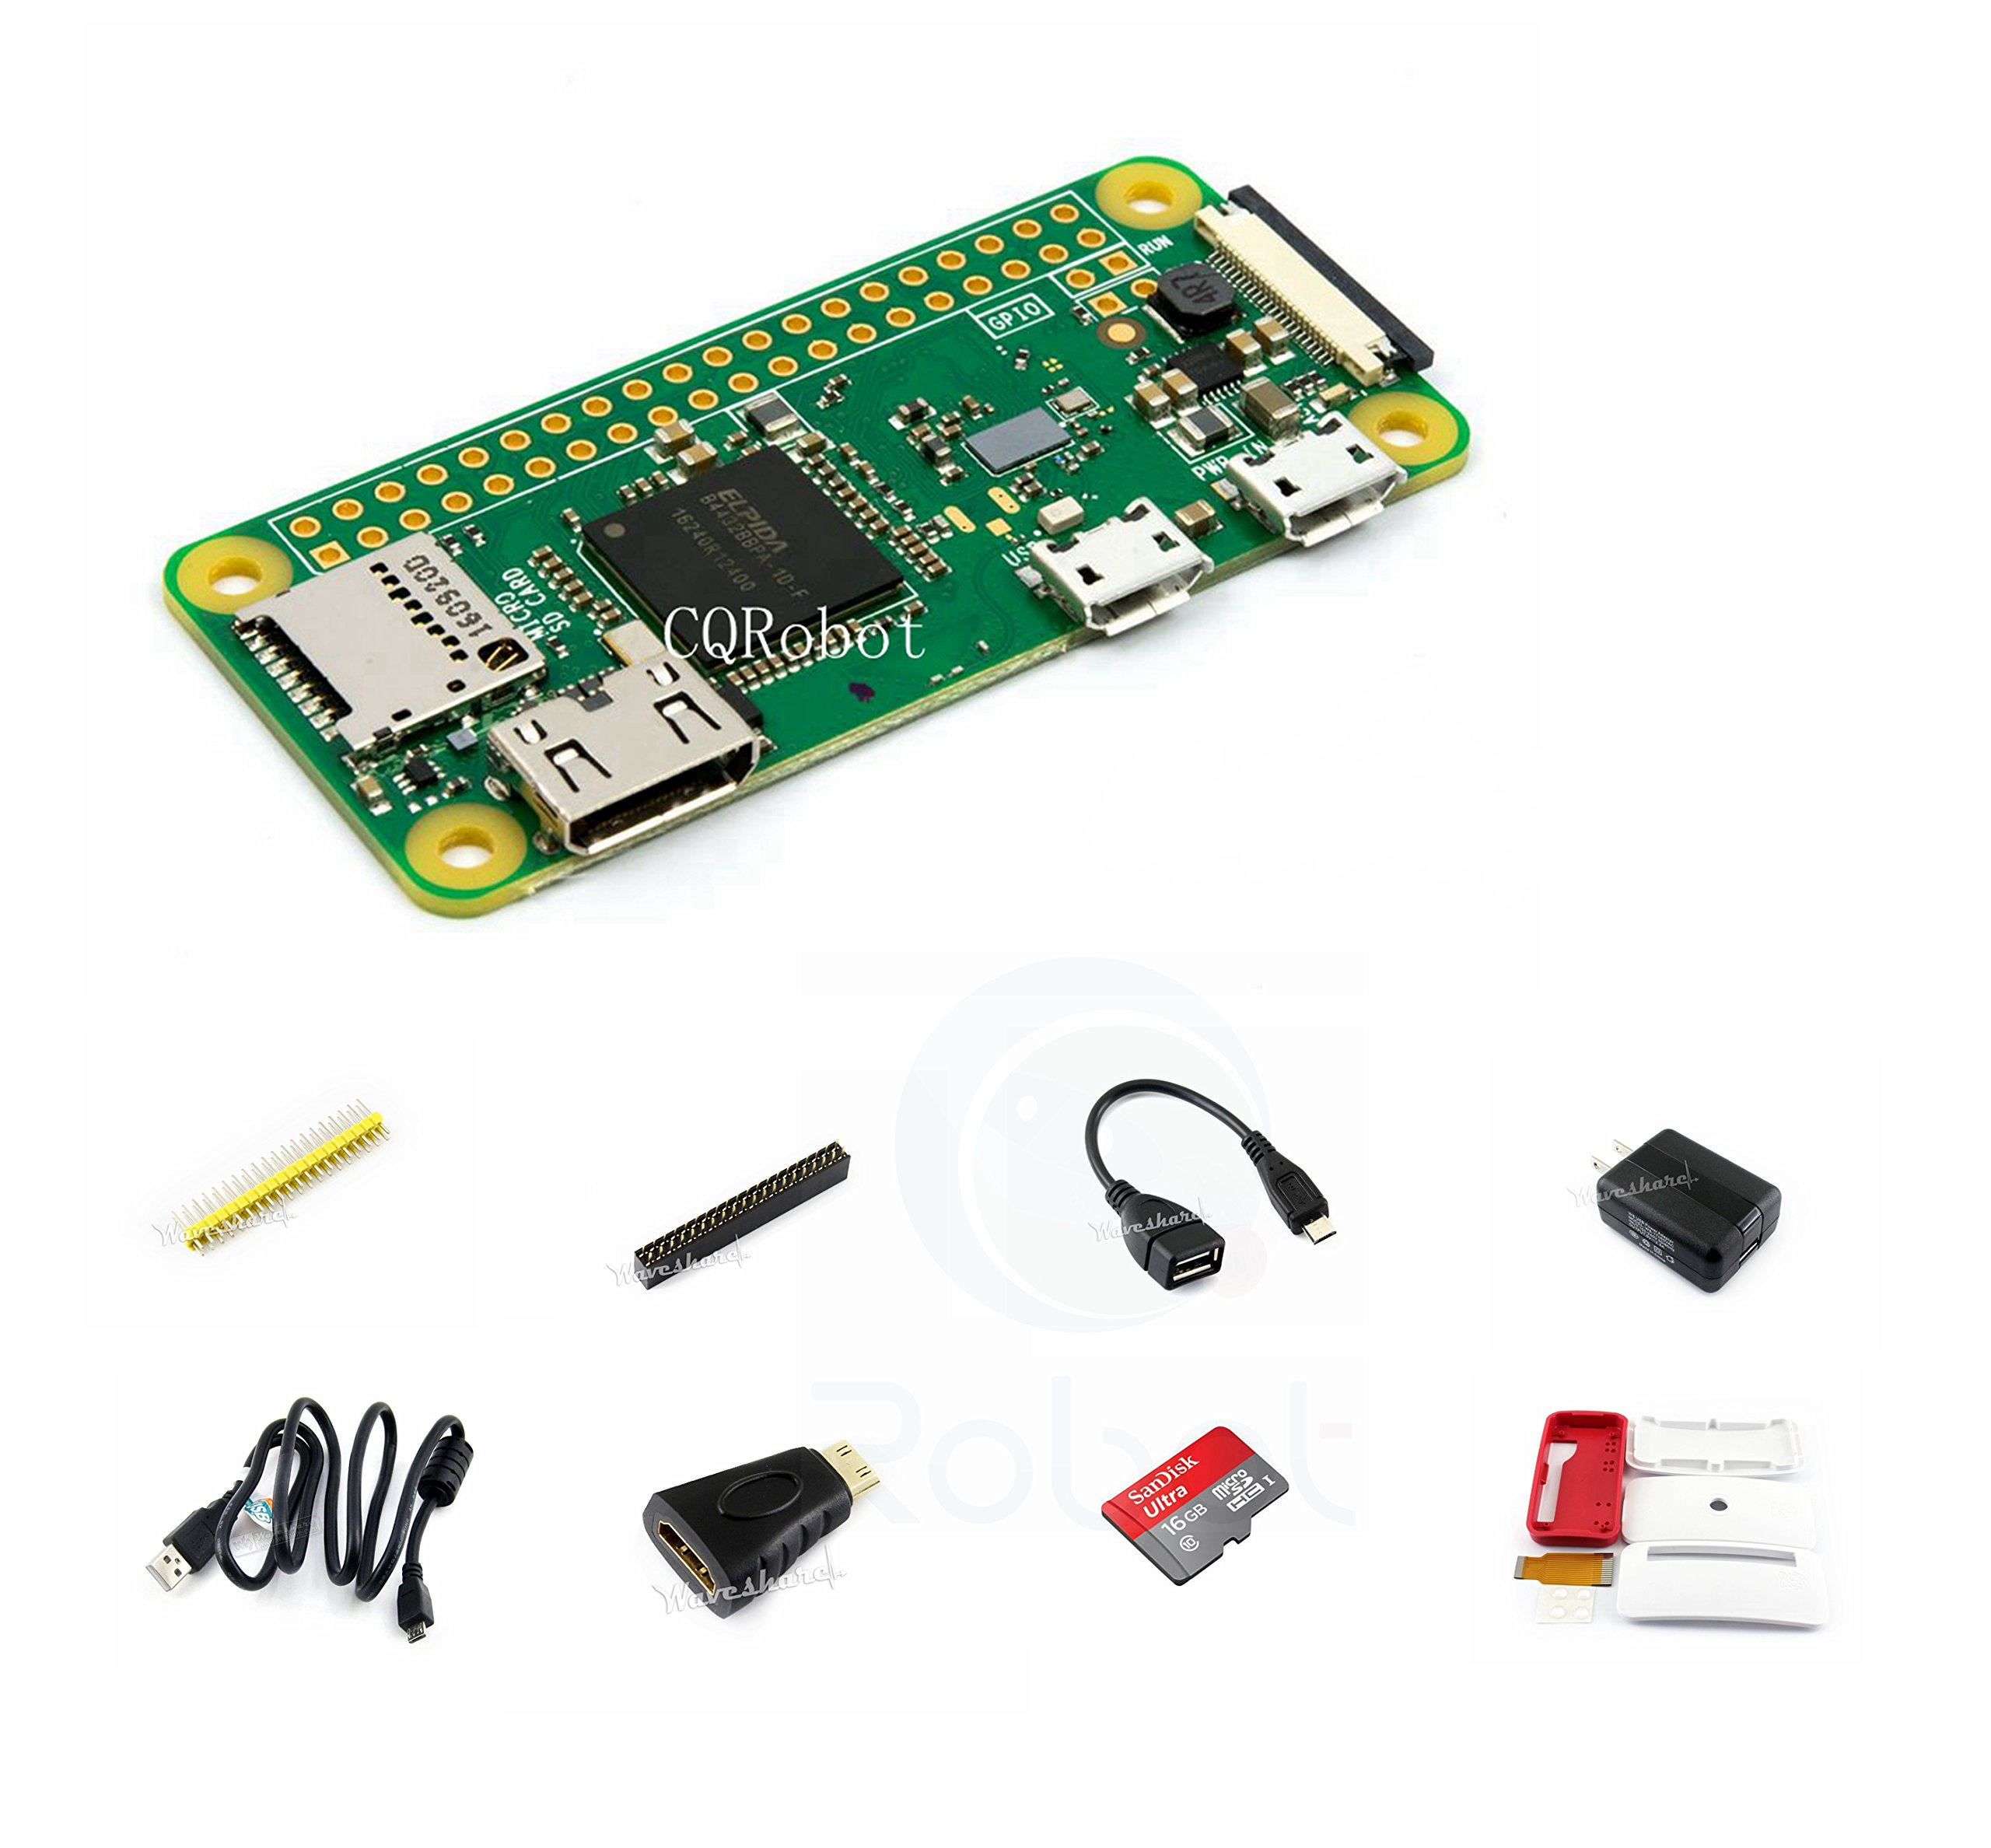 CQRobot Kit B with Official Case for Raspberry Pi Zero W (Added WiFi and Bluetooth Connectivity), Includes: Raspberry Pi Zero W, Micro SD Card, Power Adapter and Basic Components.